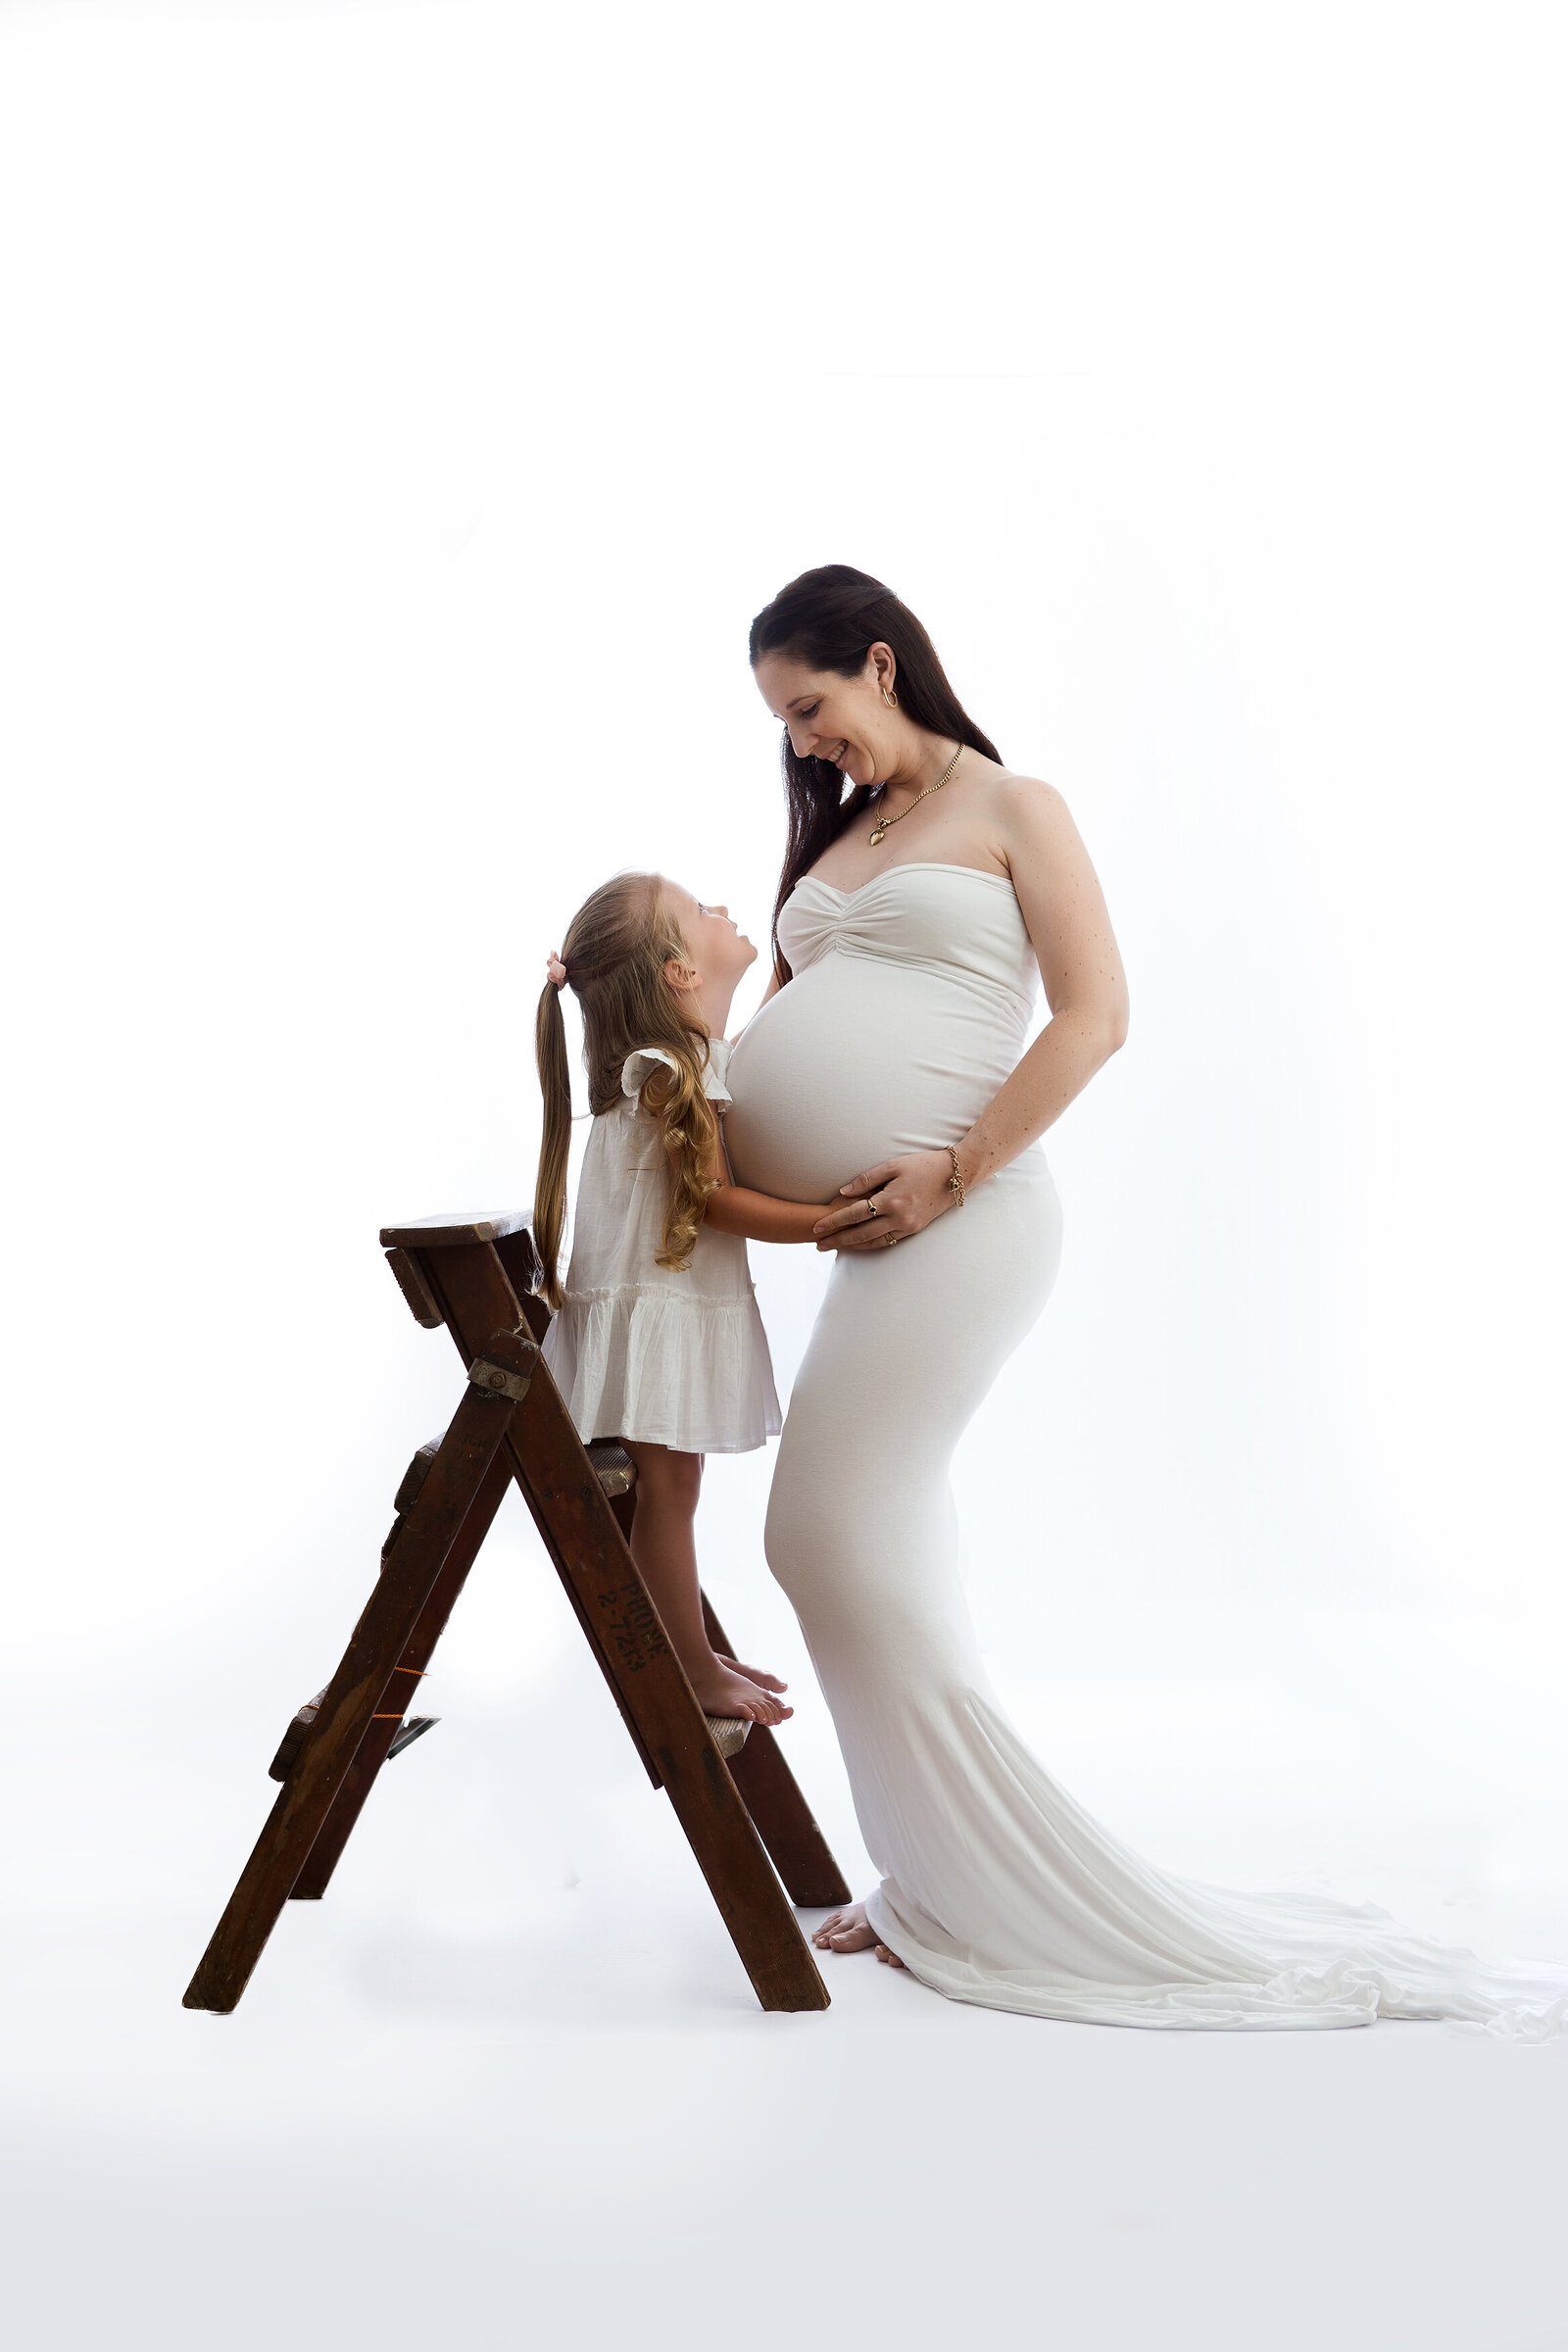 Professional maternity portrait in-studio, mother and daughter on ladder